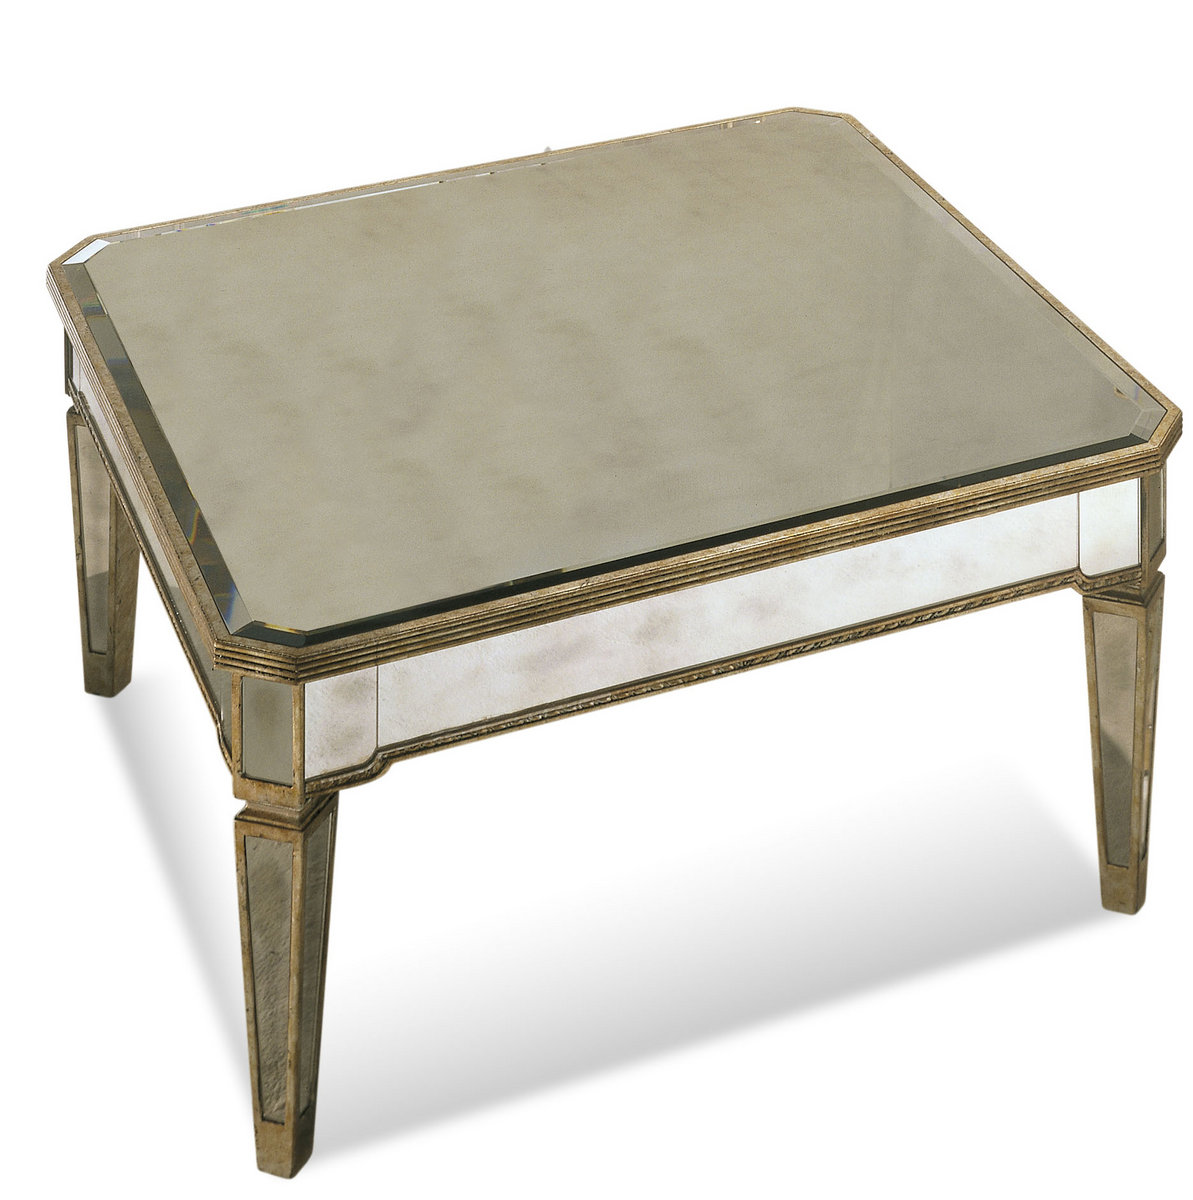 mirror finish furniture. Borghese Mirrored Square Cocktail Table (Antique Mirror \u0026 Silver Leaf Finish) - [8311-130] Finish Furniture .